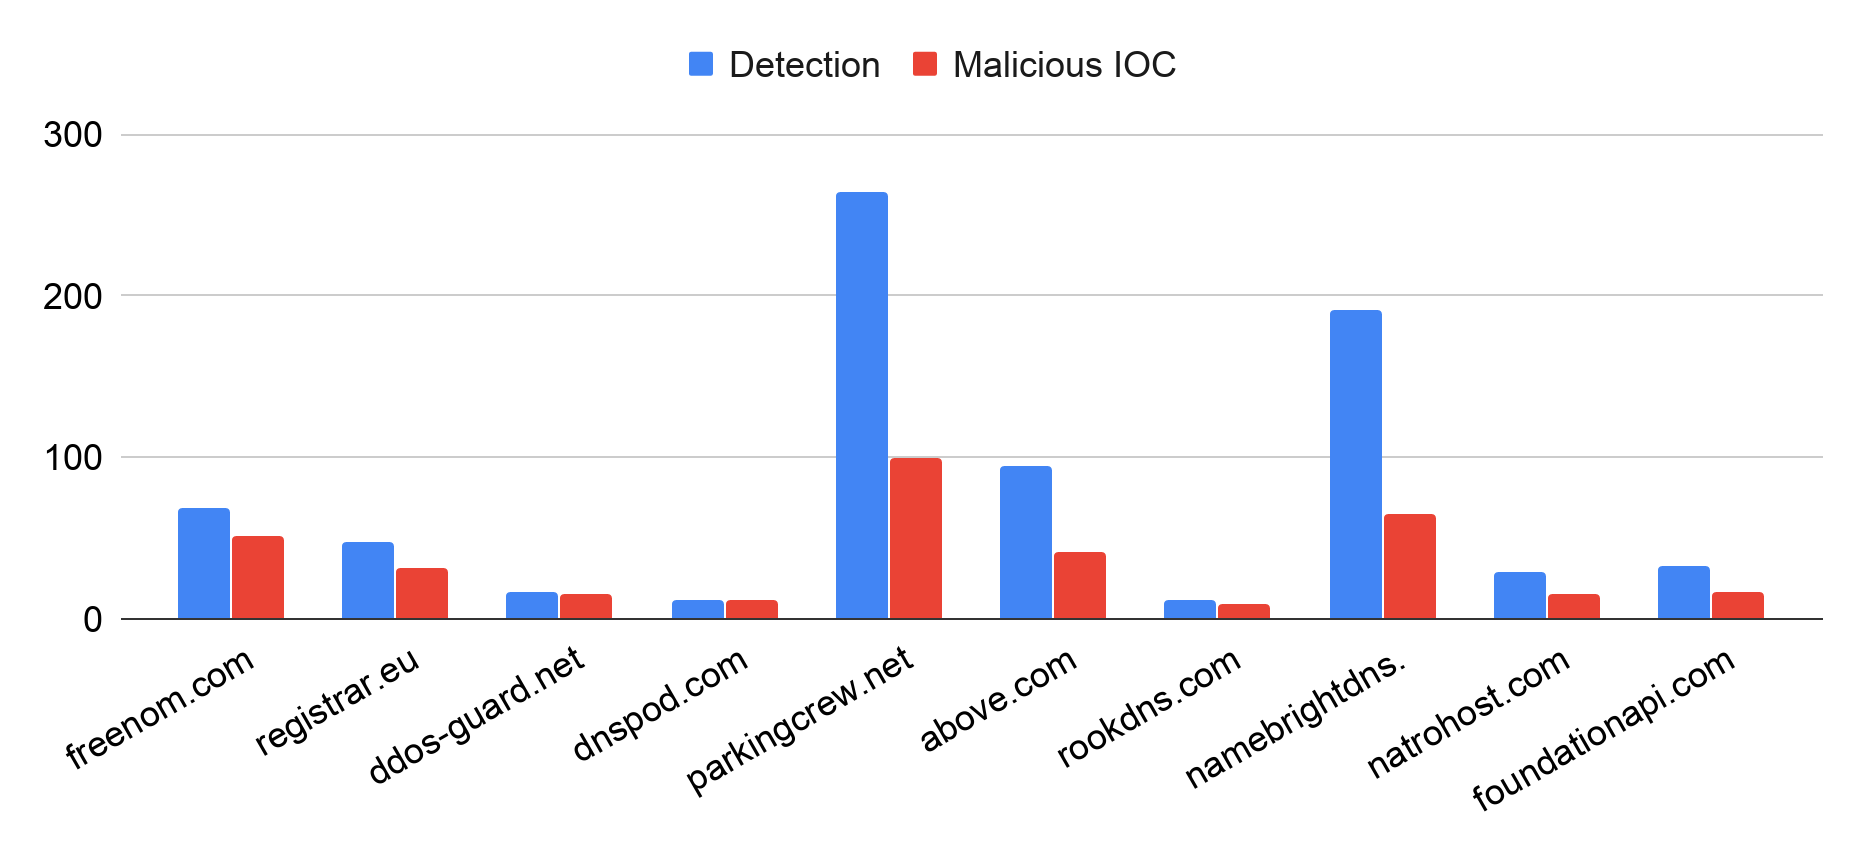 This graph shows the top 10 DNS services most abused by cybersquatting in December 2019, this time in terms of squatting detected (blue bars) and malicious IOC (red bars)